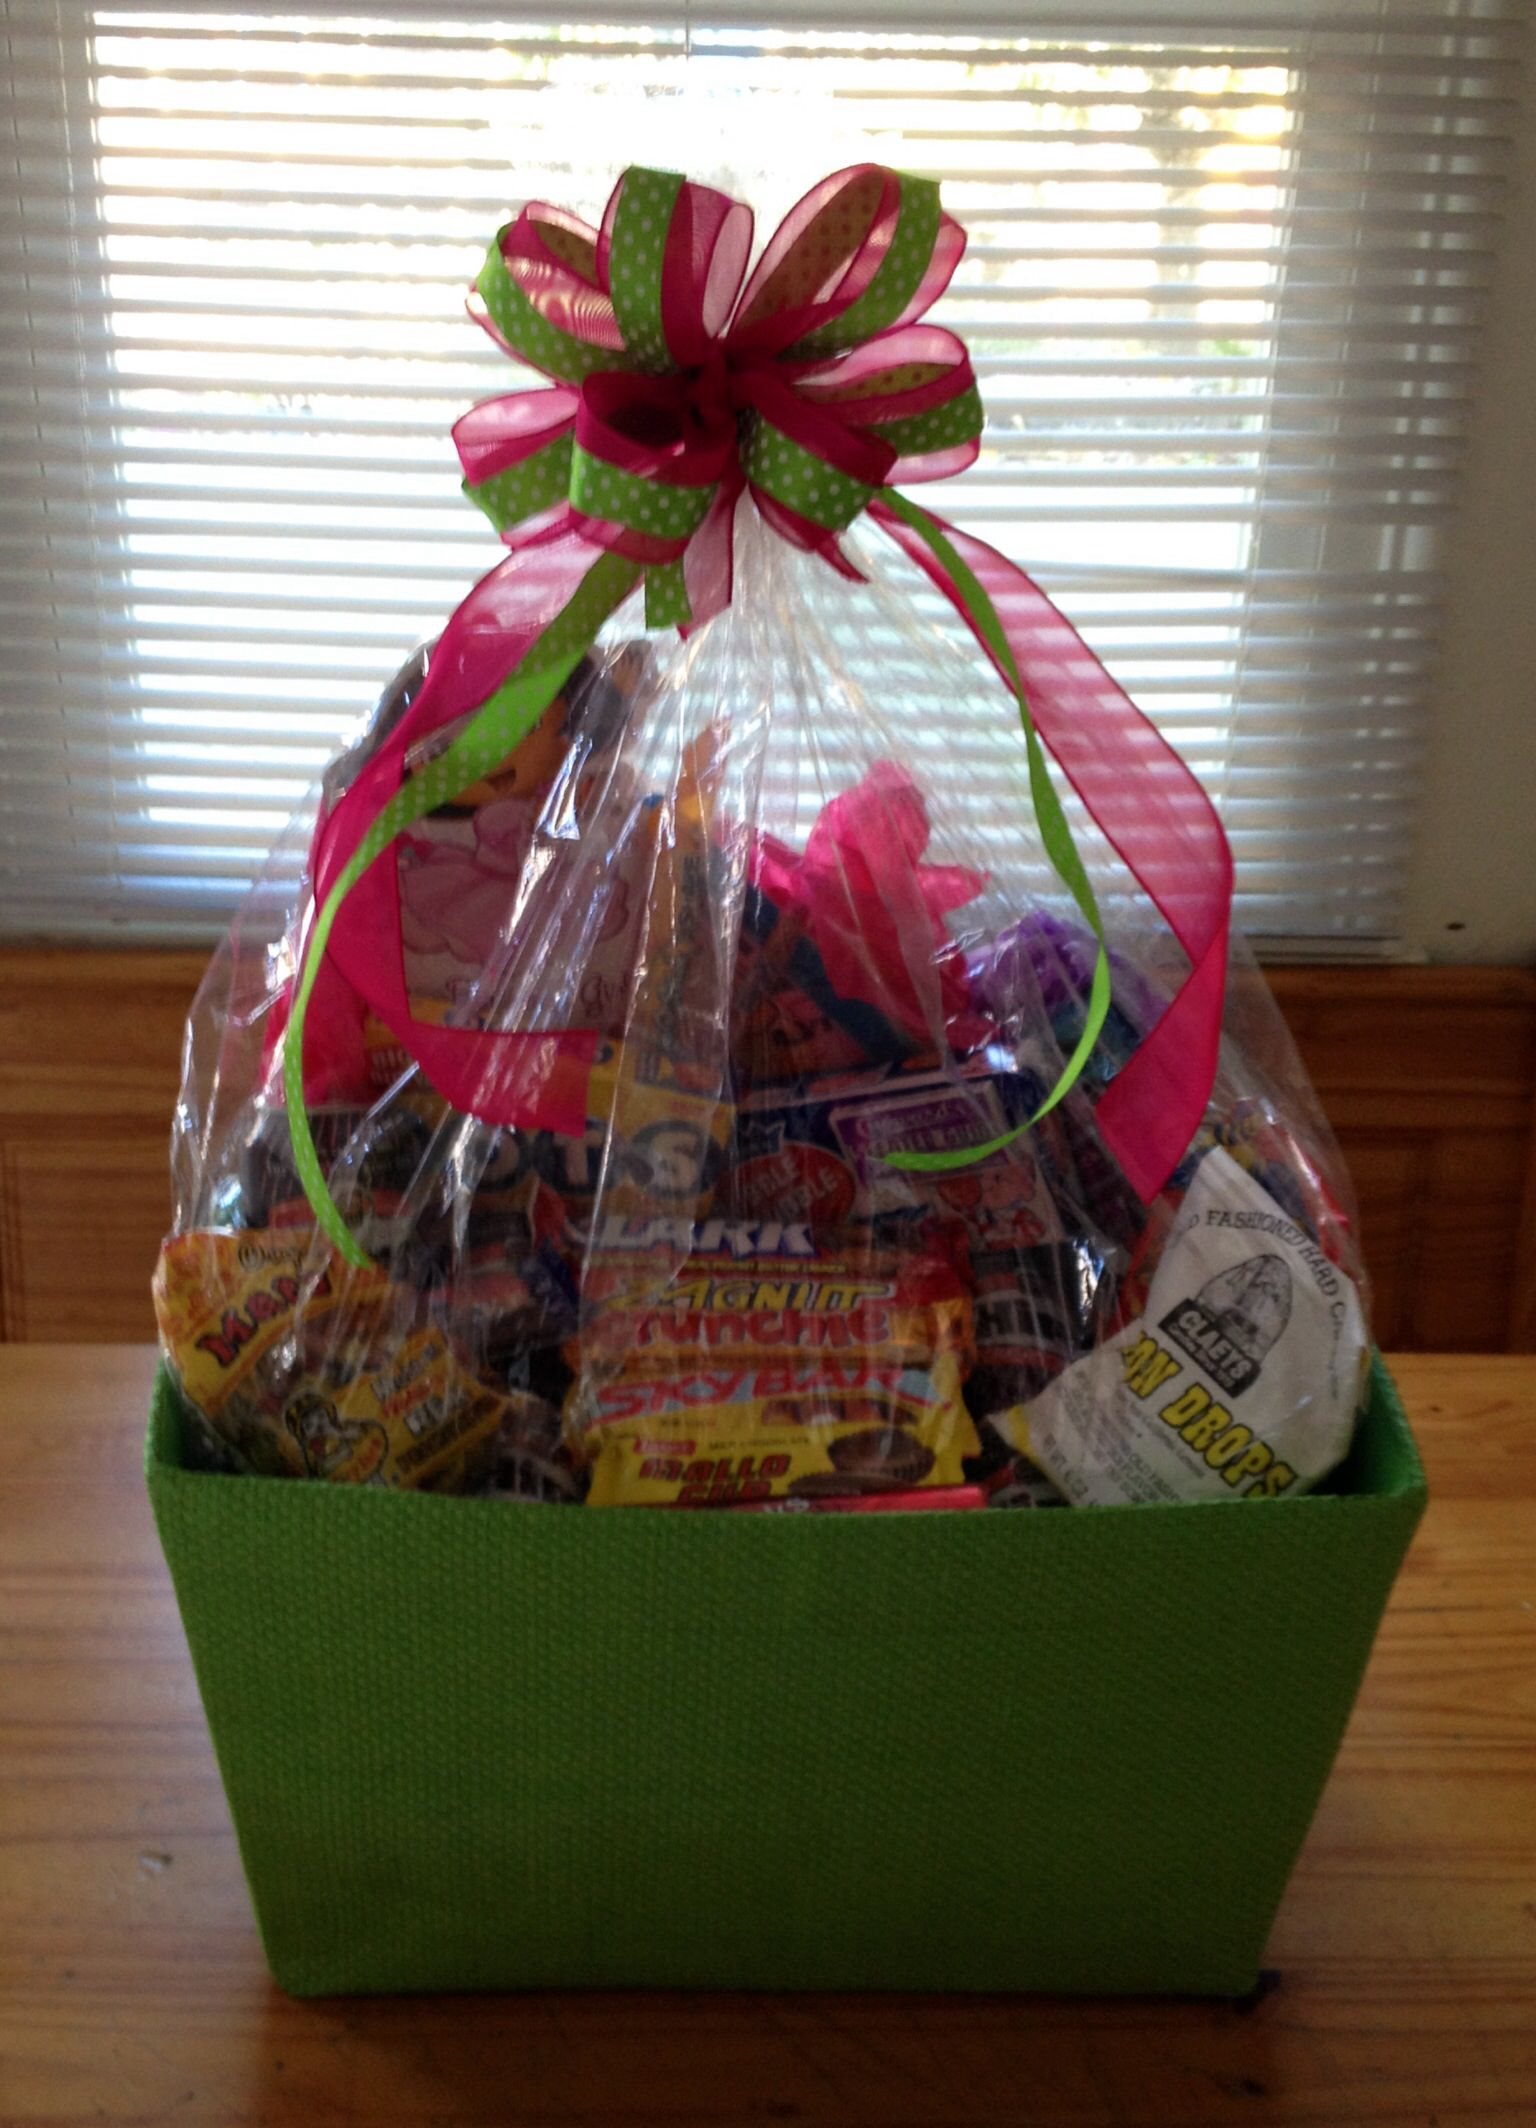 Nostalgia Gift Basket For Grandmas 80th Birthday Hire Root Beer Dubble Bubble Chowards